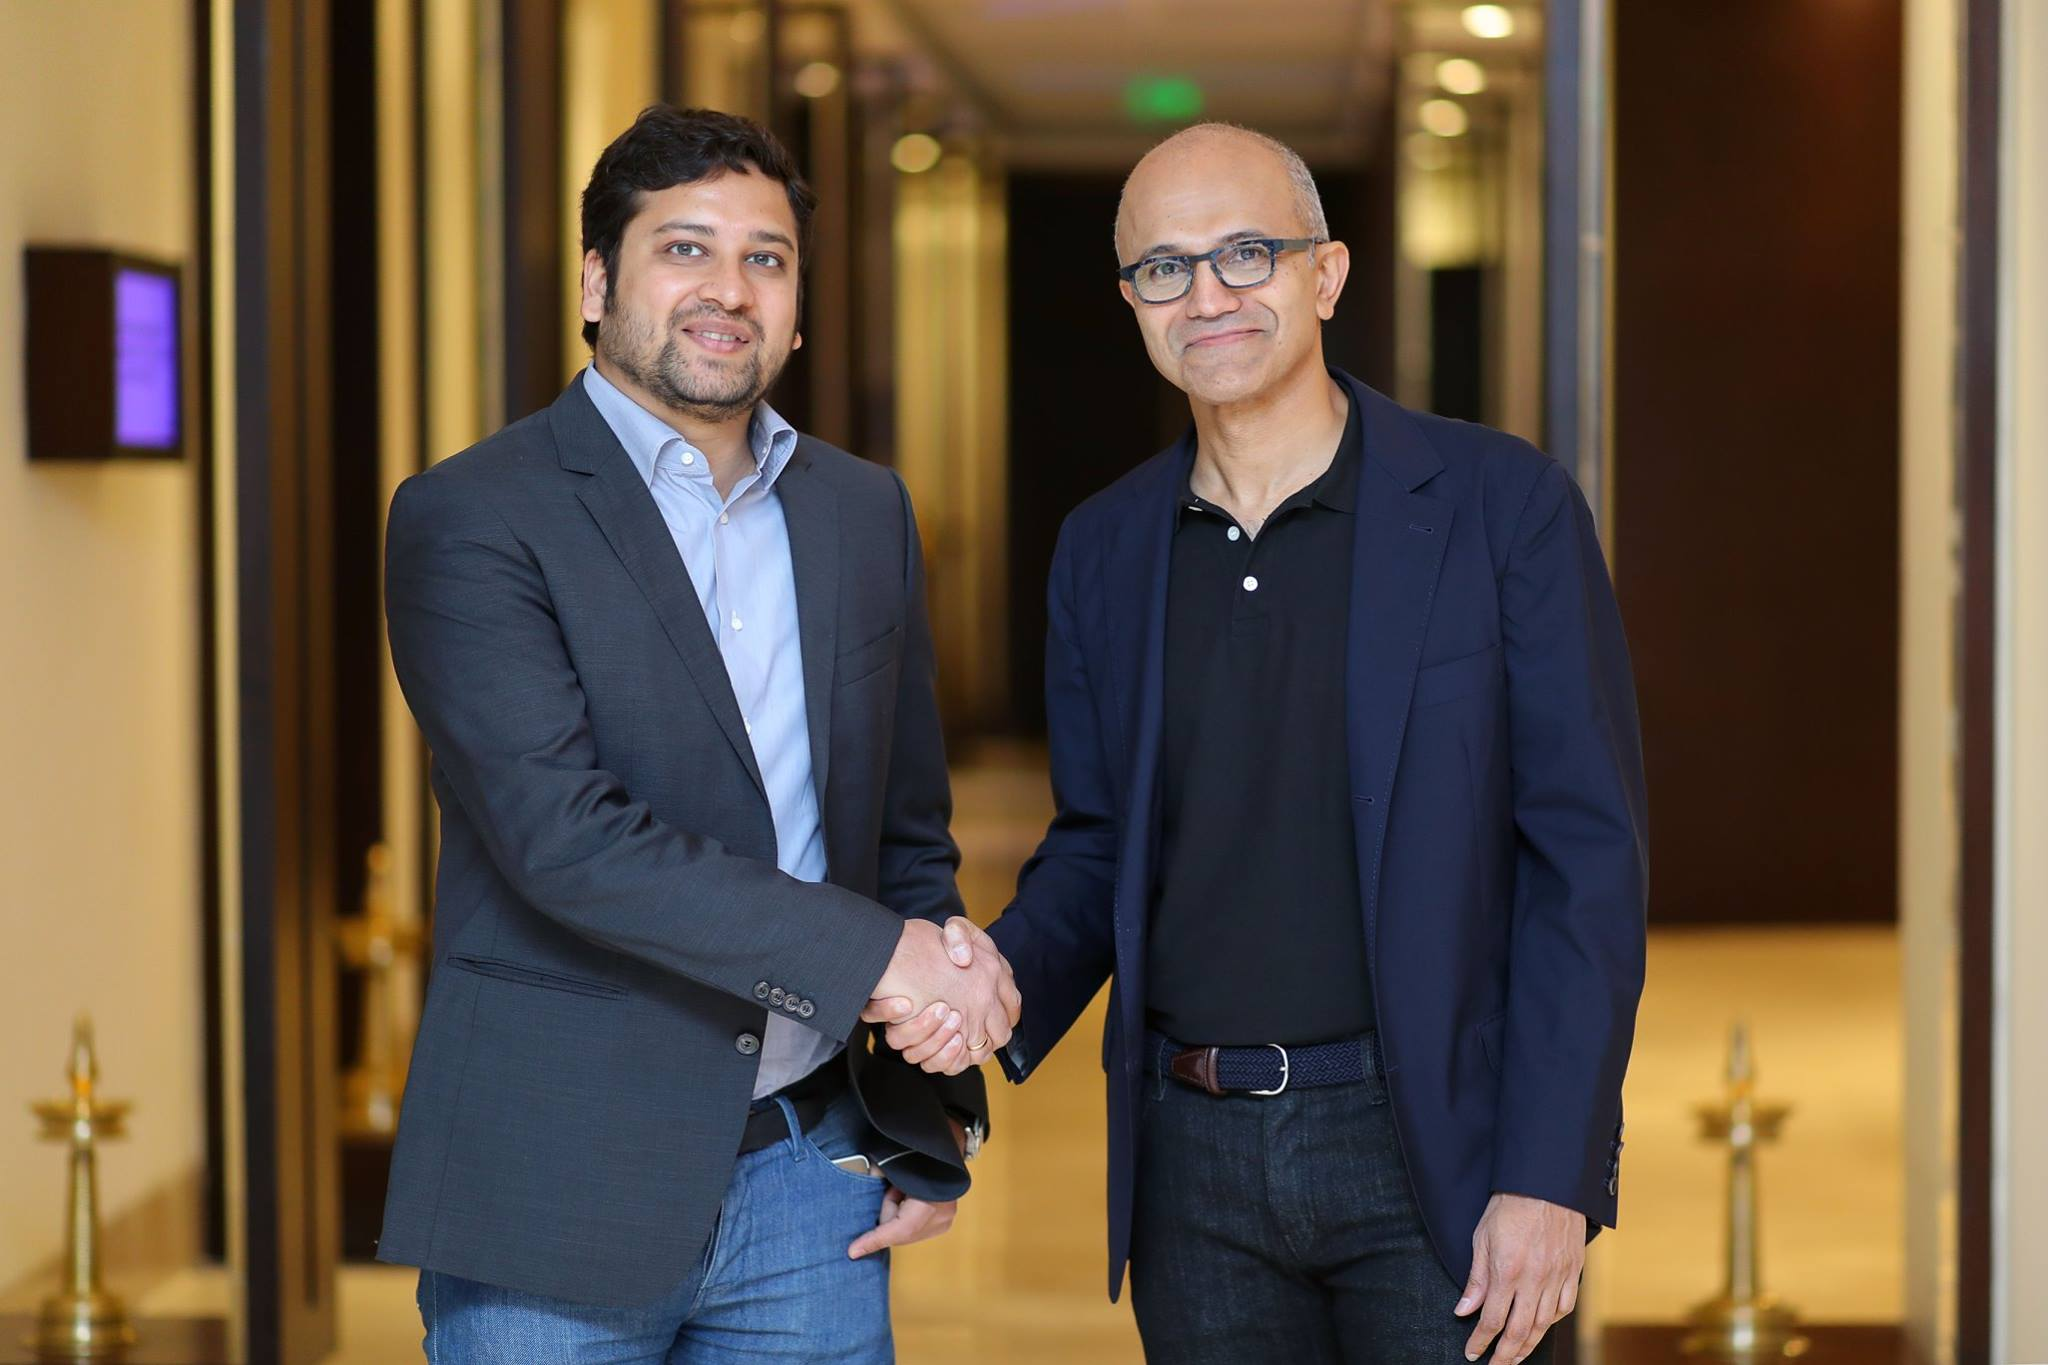 Flipkart Lands 1 4b From Microsoft Ebay Tencent As India Online Retail Battle With Amazon Continues Geekwire